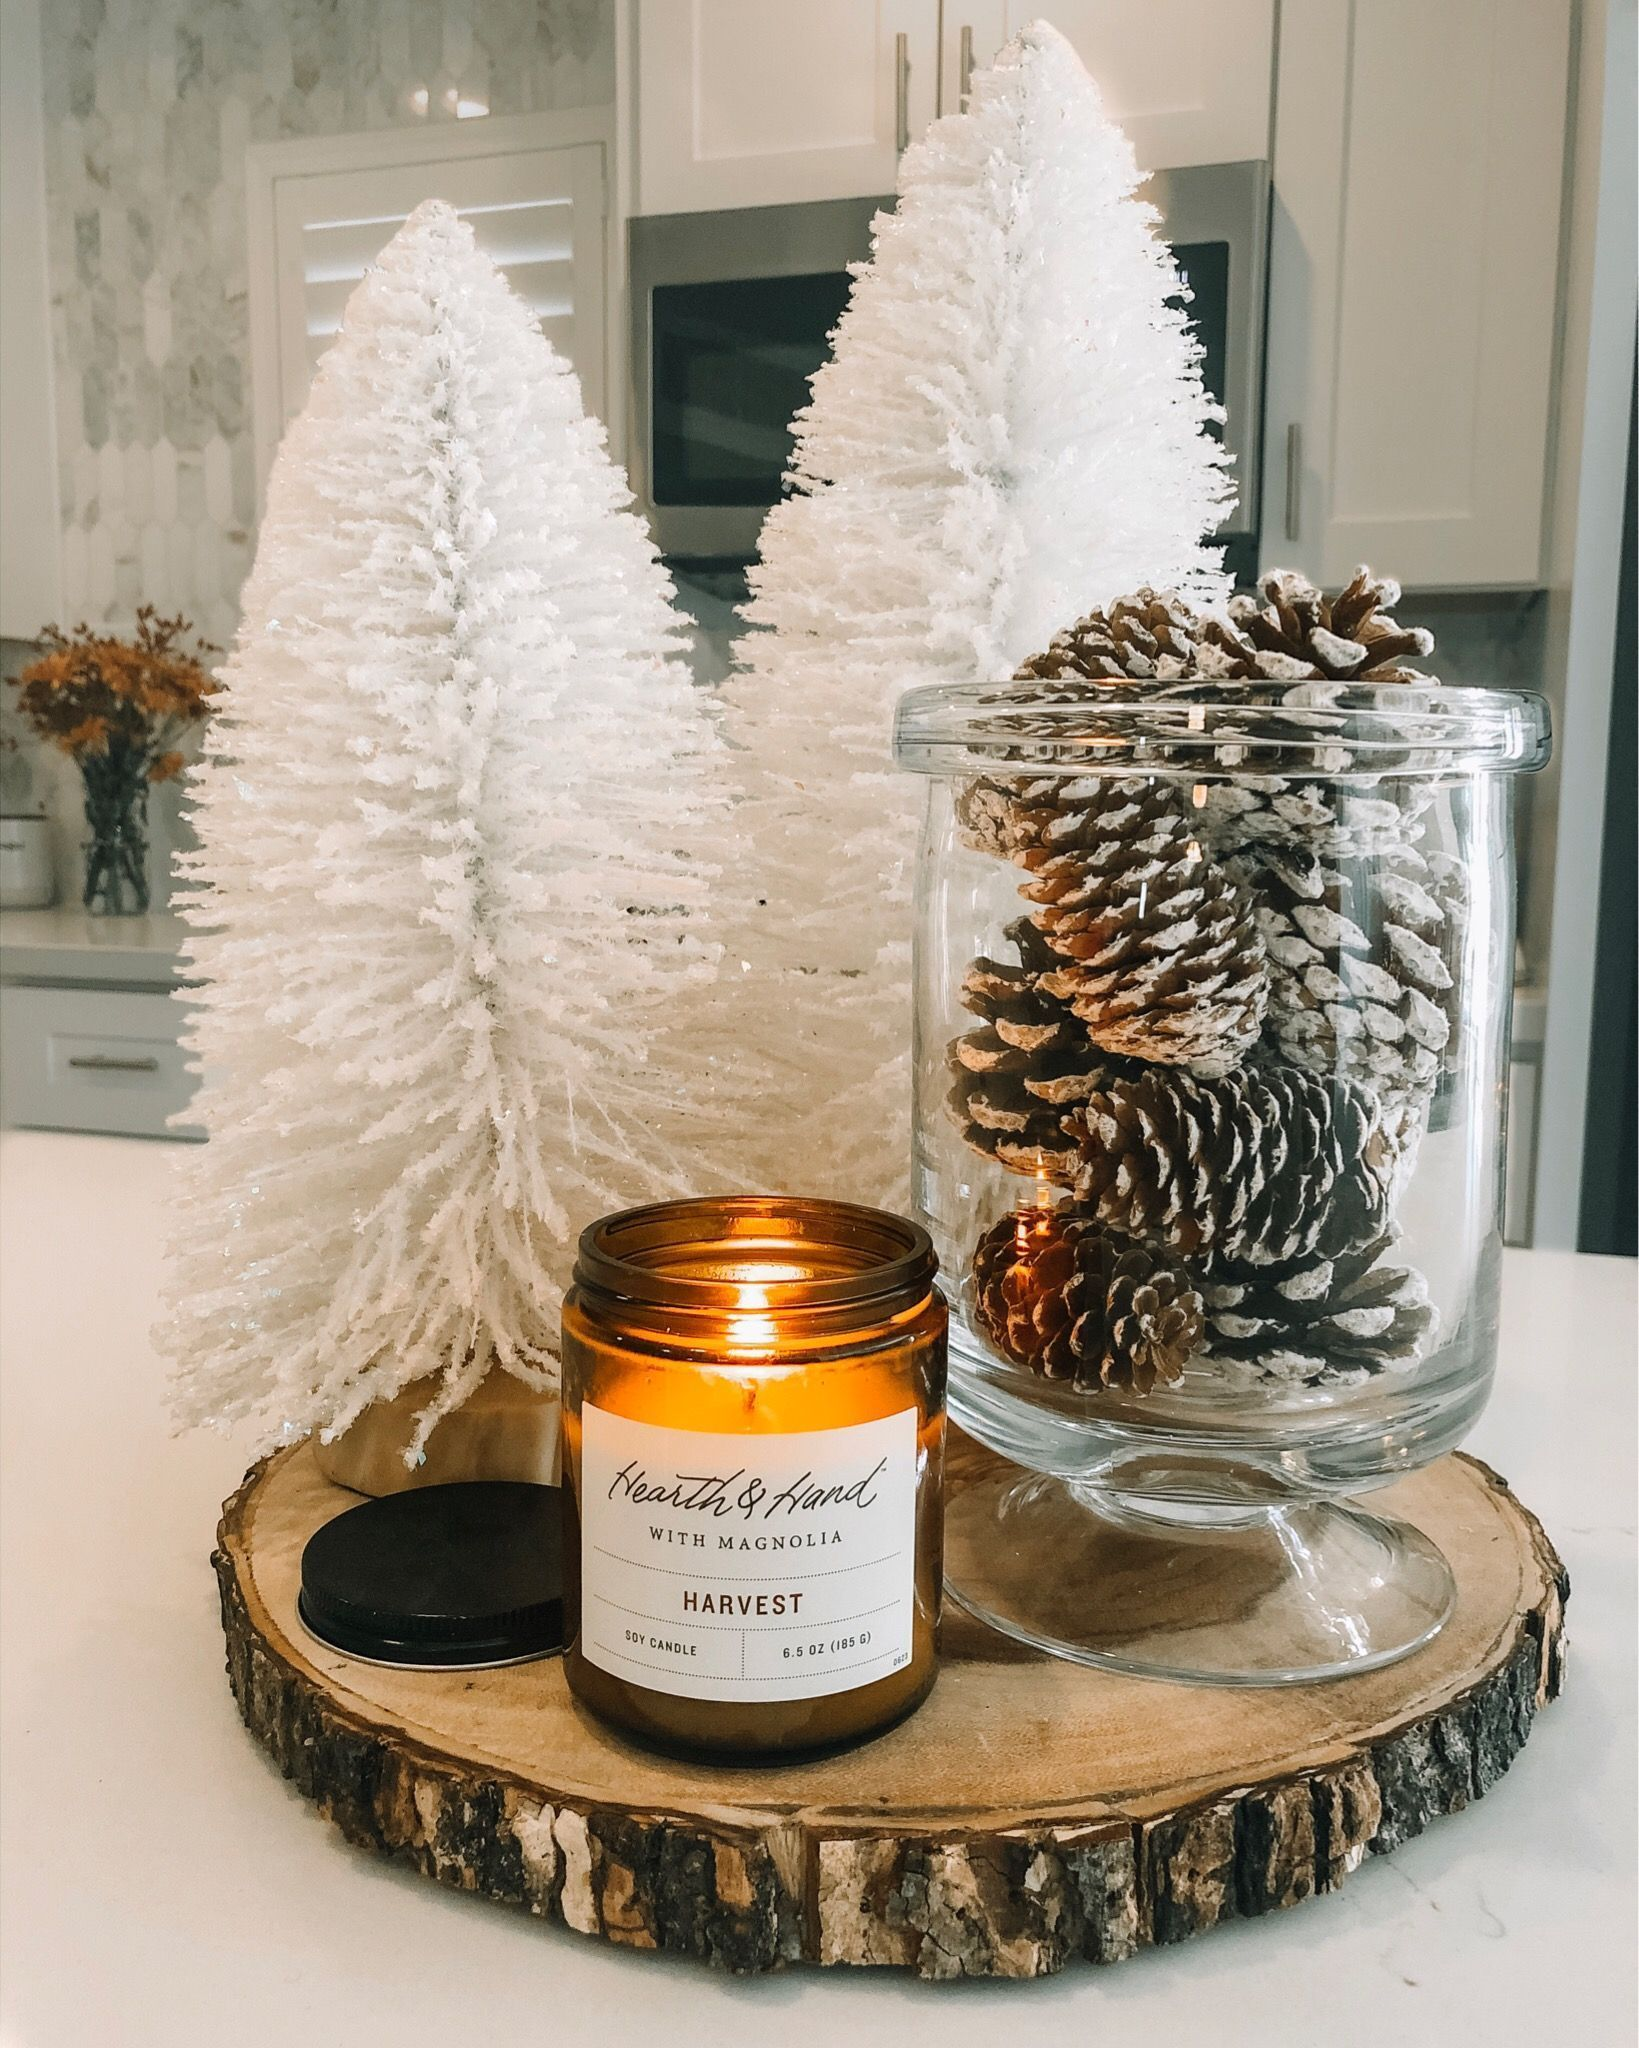 24 Small Apartment Christmas Decor Ideas - My College Savvy -   20 christmas decorations ideas